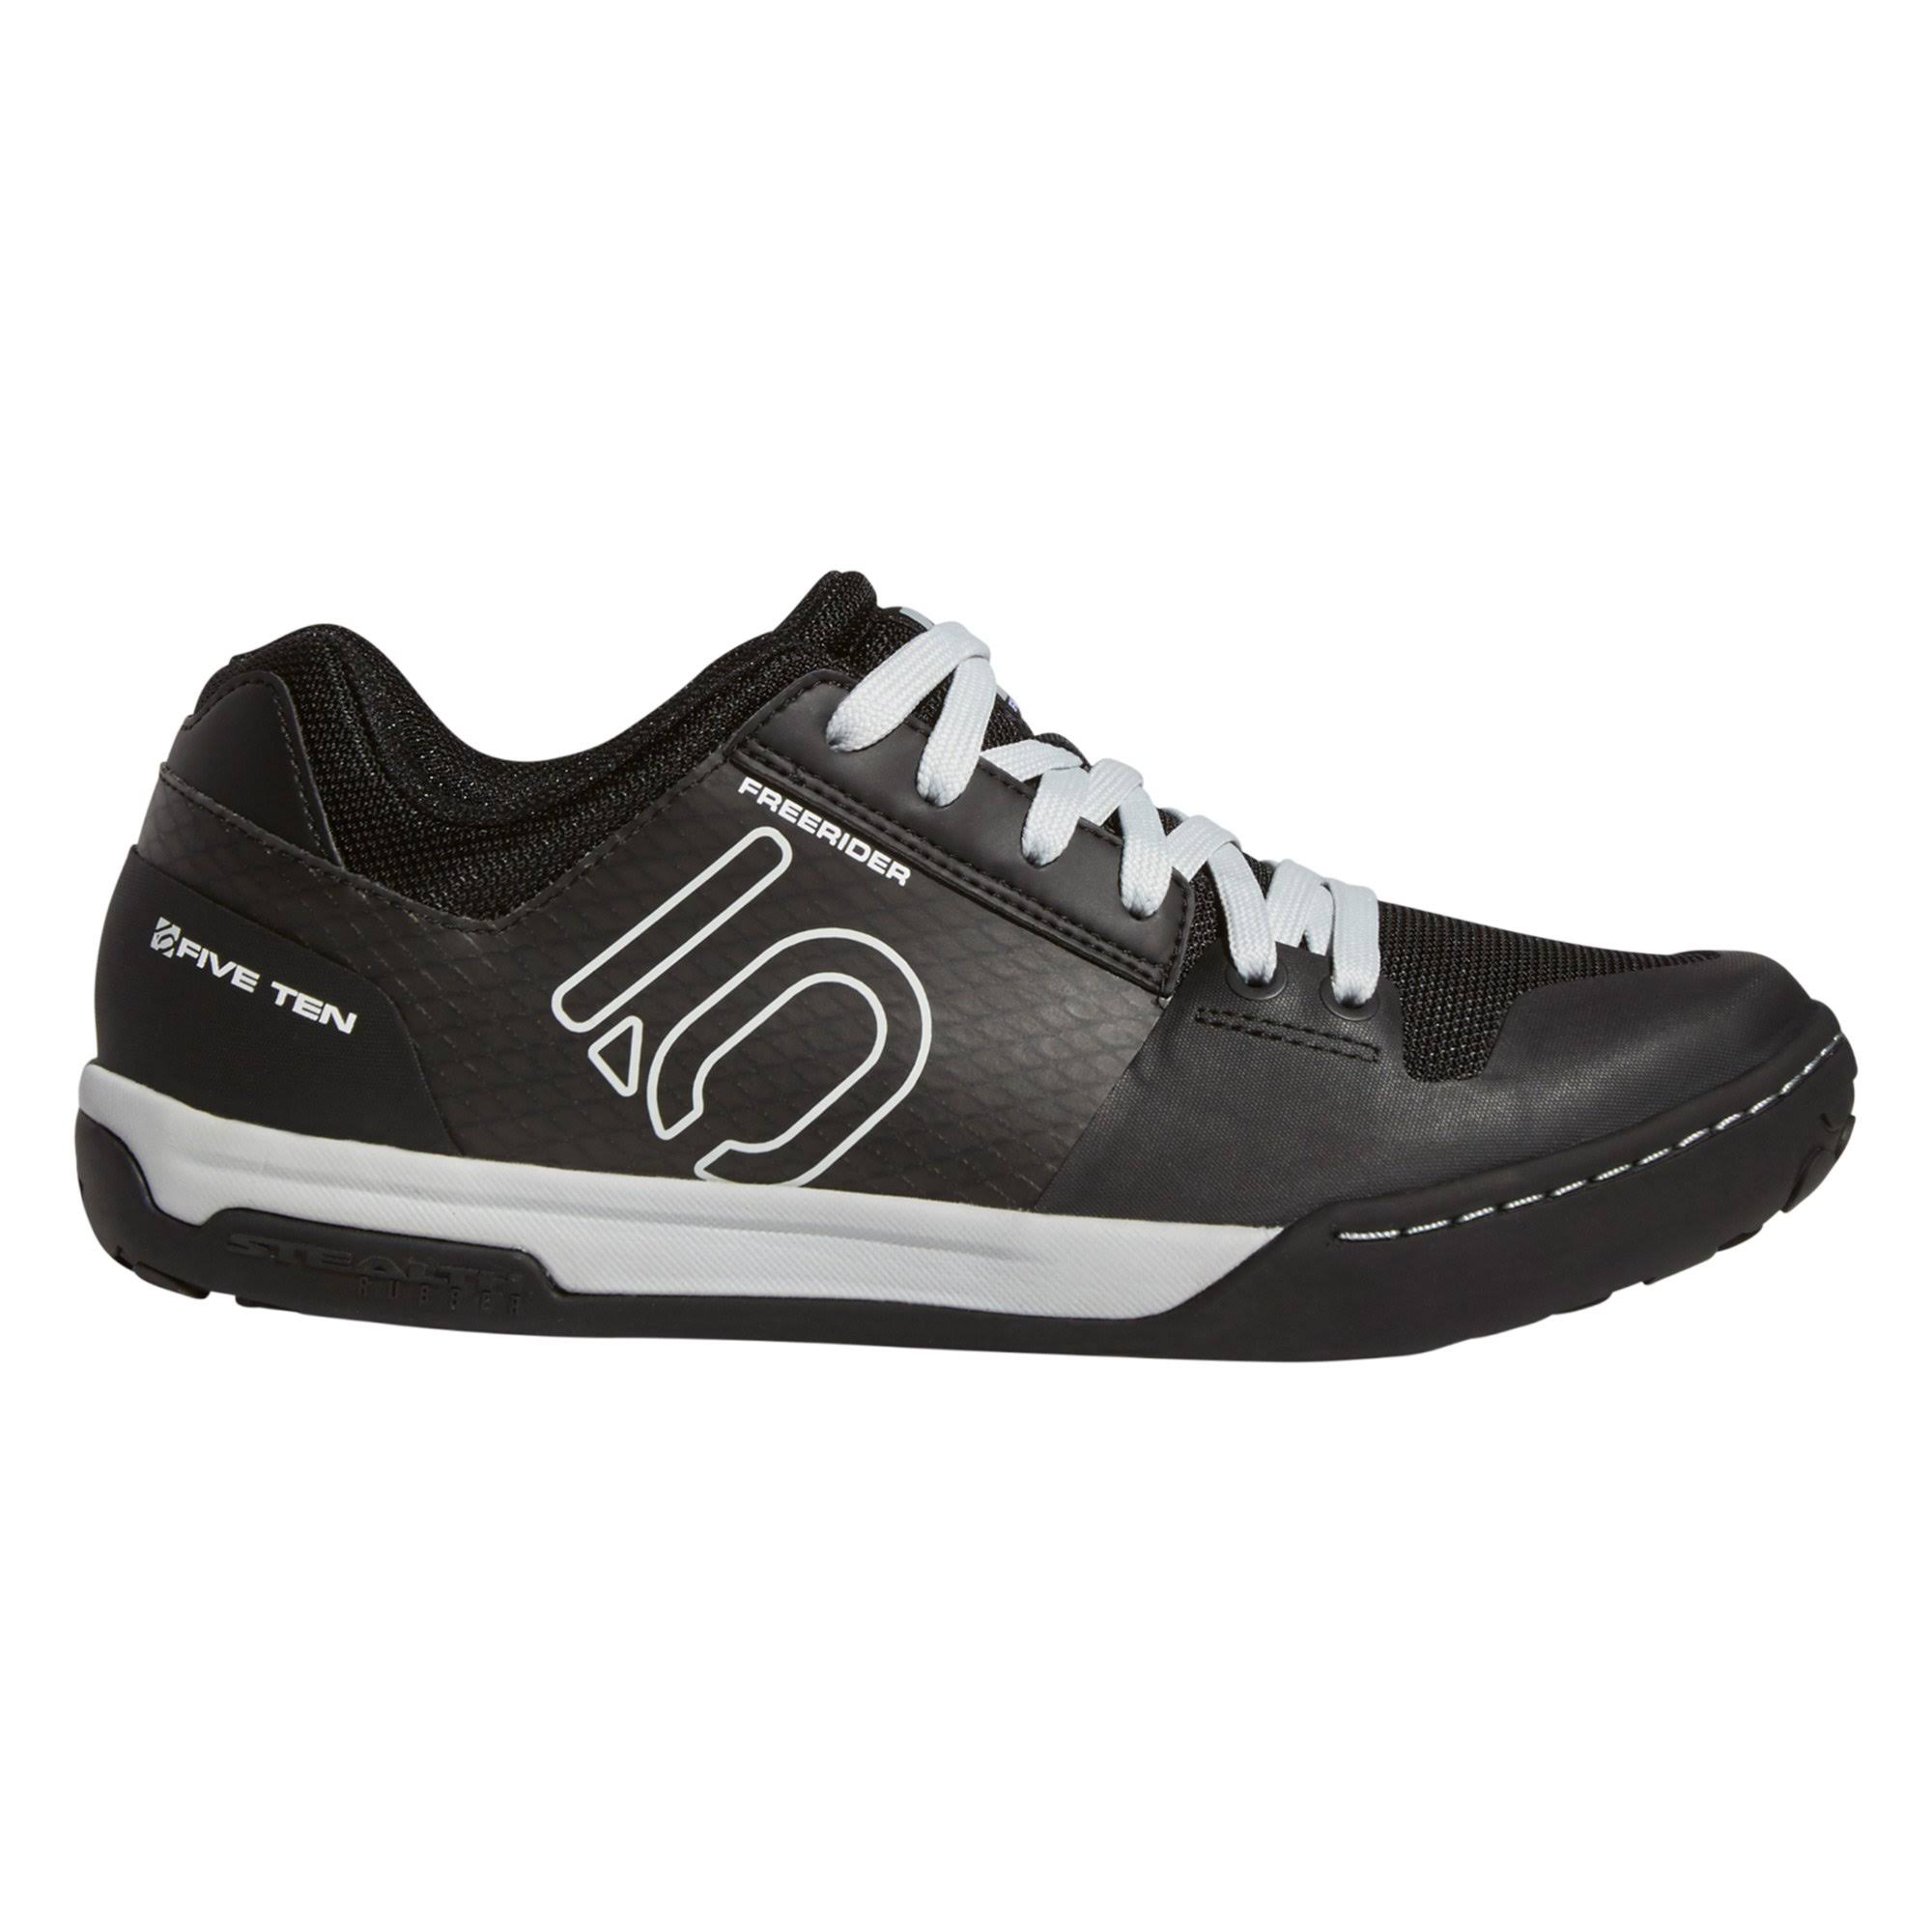 Five Ten Freerider Contact MTB Shoes Black/Grey